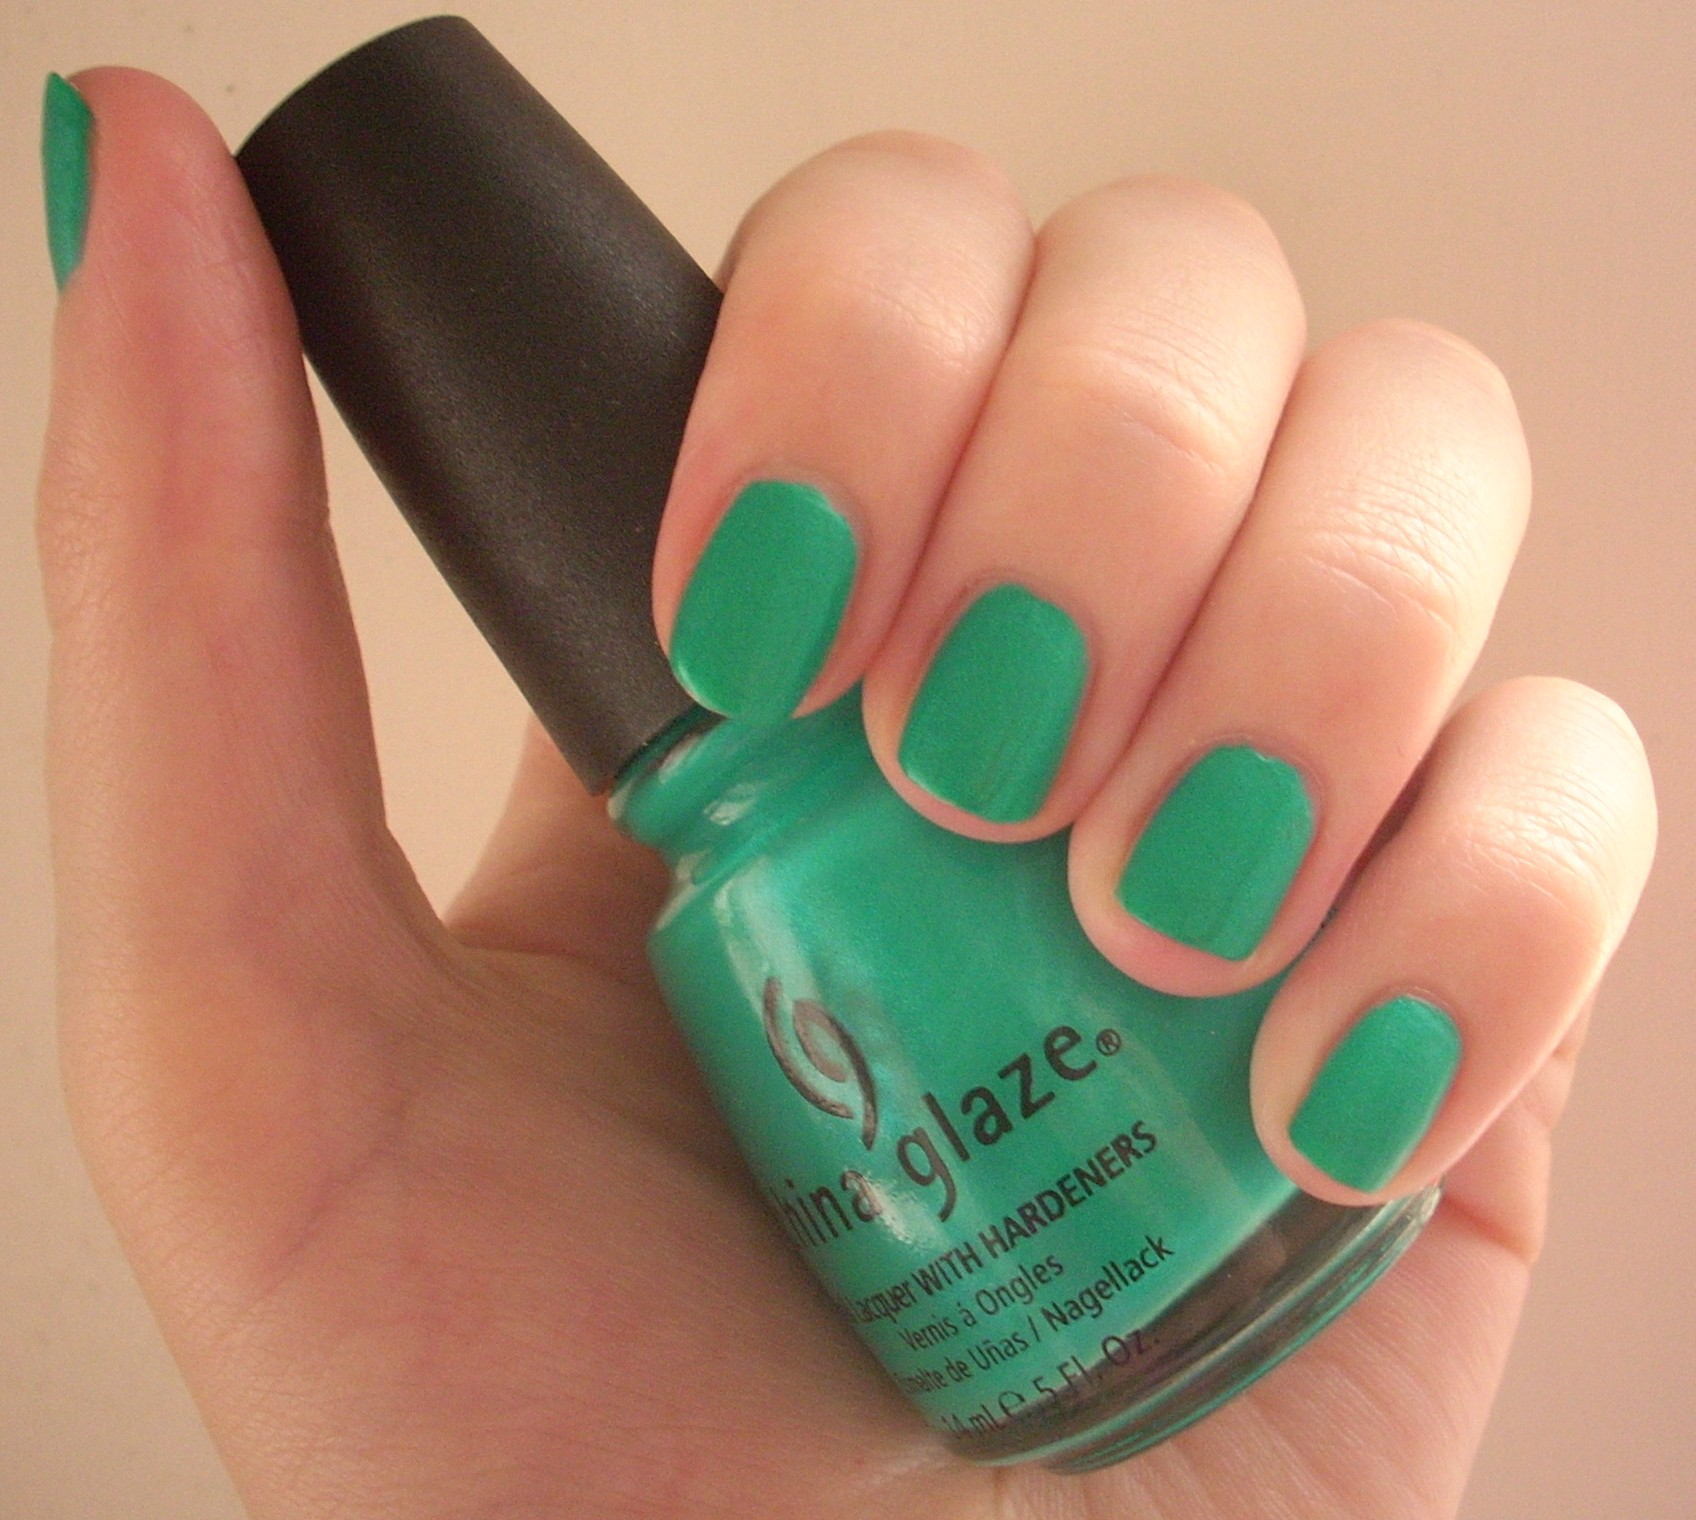 China glaze turned up turquoise nail polish review through the like nvjuhfo Gallery